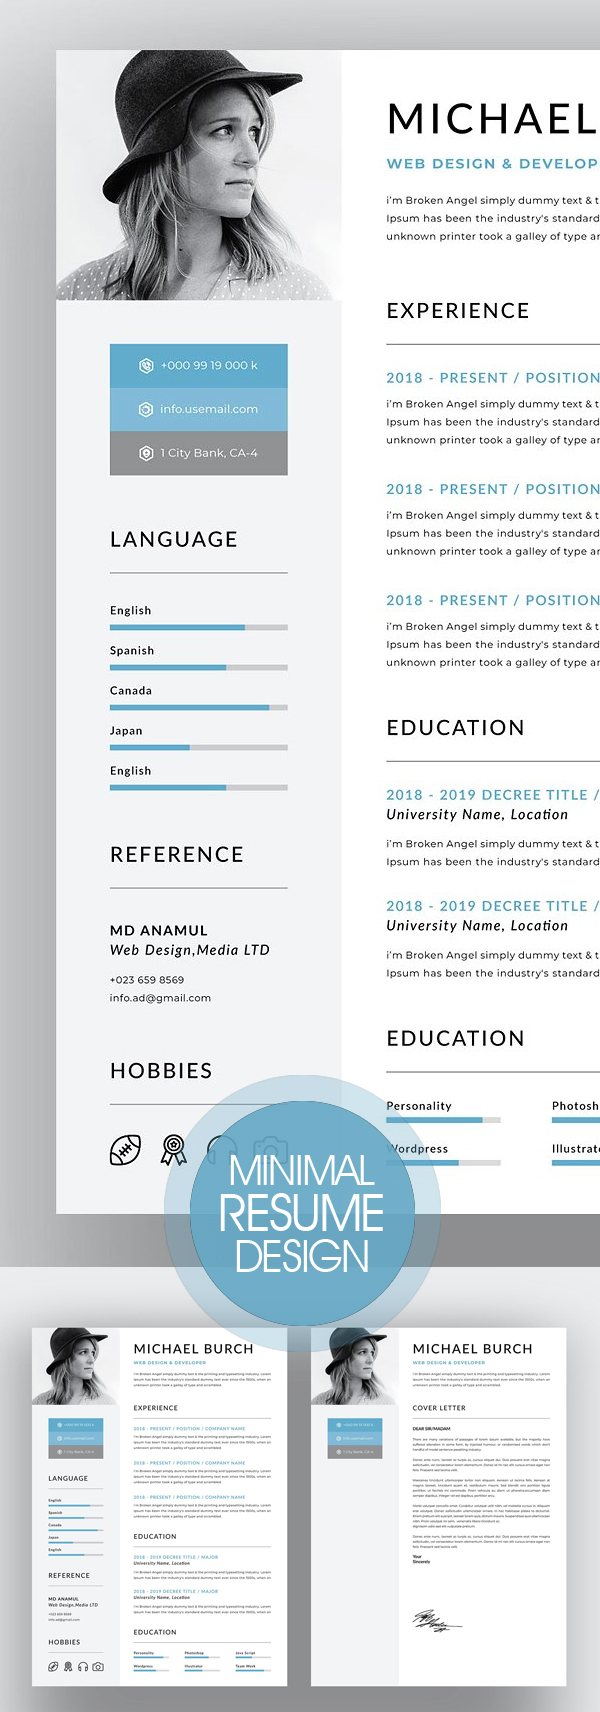 Creative Minimal Resume Design